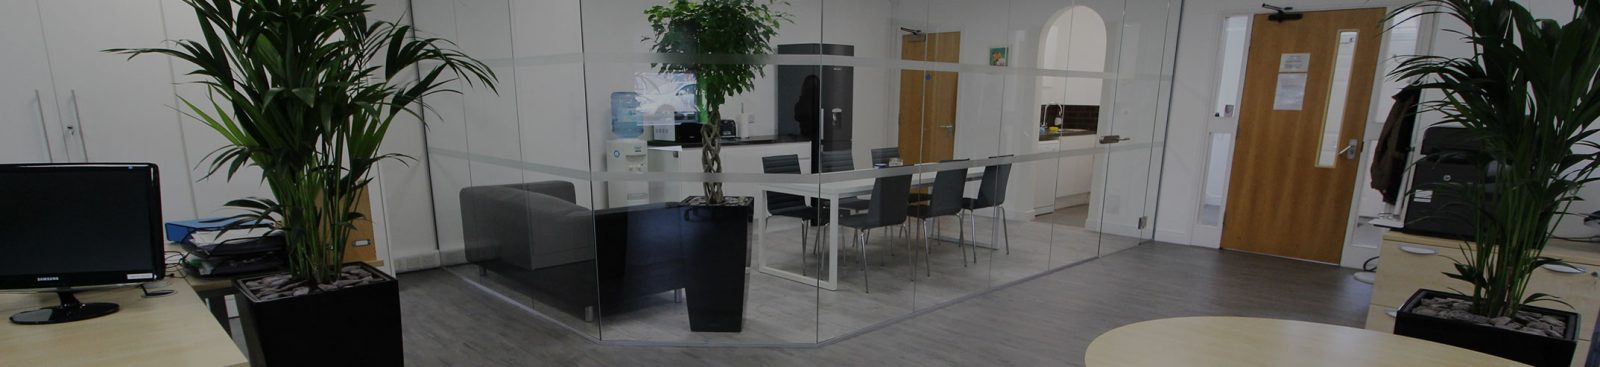 A new lease of life for Nutriad's Chester offices image